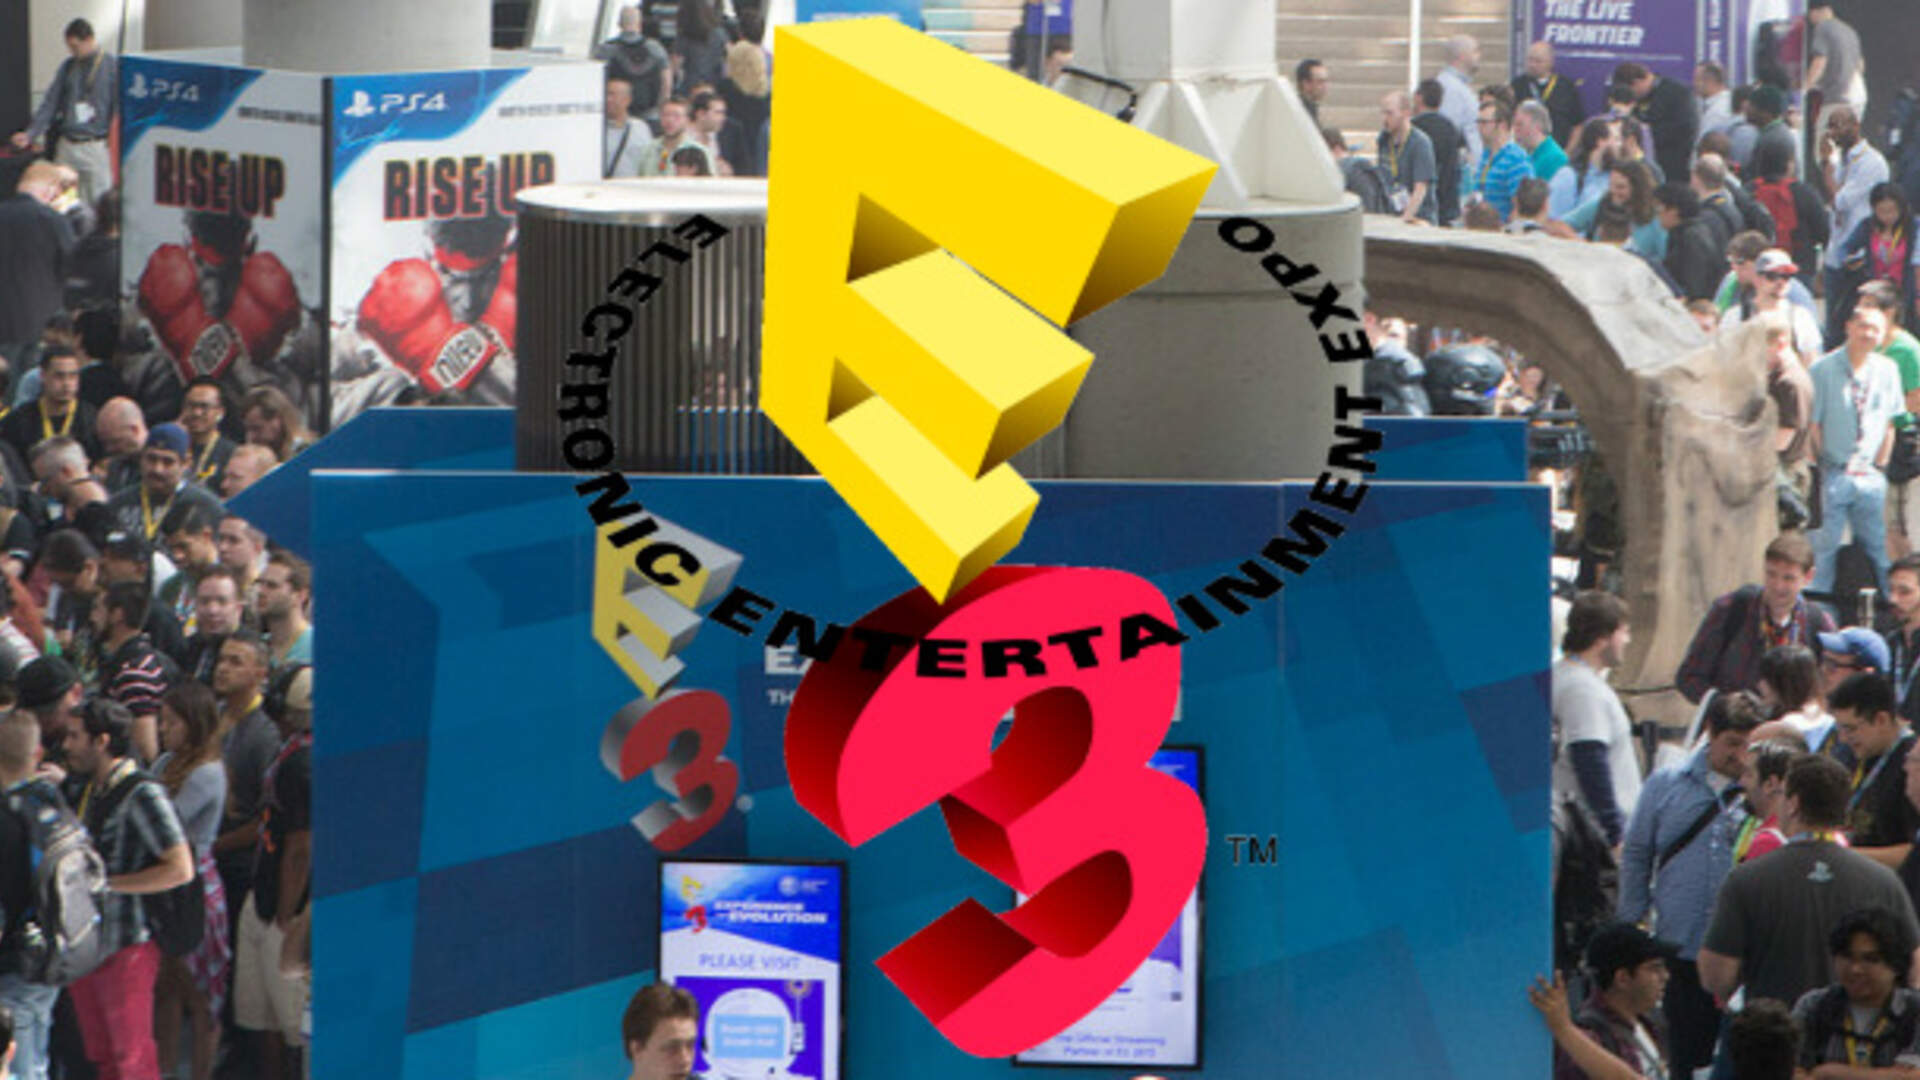 Opinion: E3 Going Public is a Good Thing. But Can it Deliver a Great Consumer Experience?